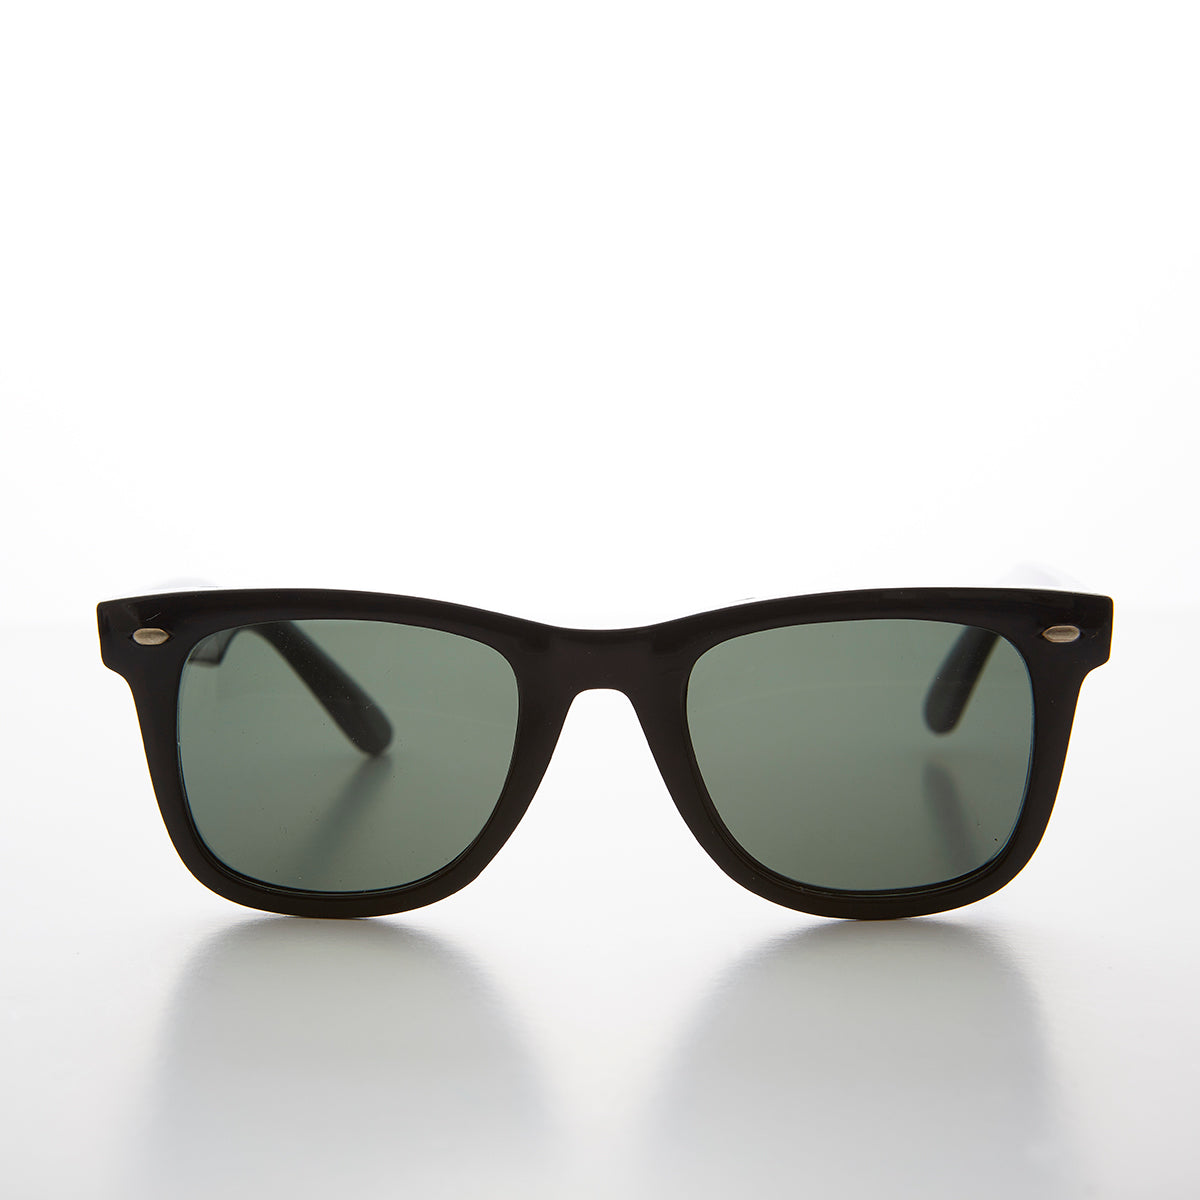 Classic Black Square Sunglass with Glass Lens - Campbell